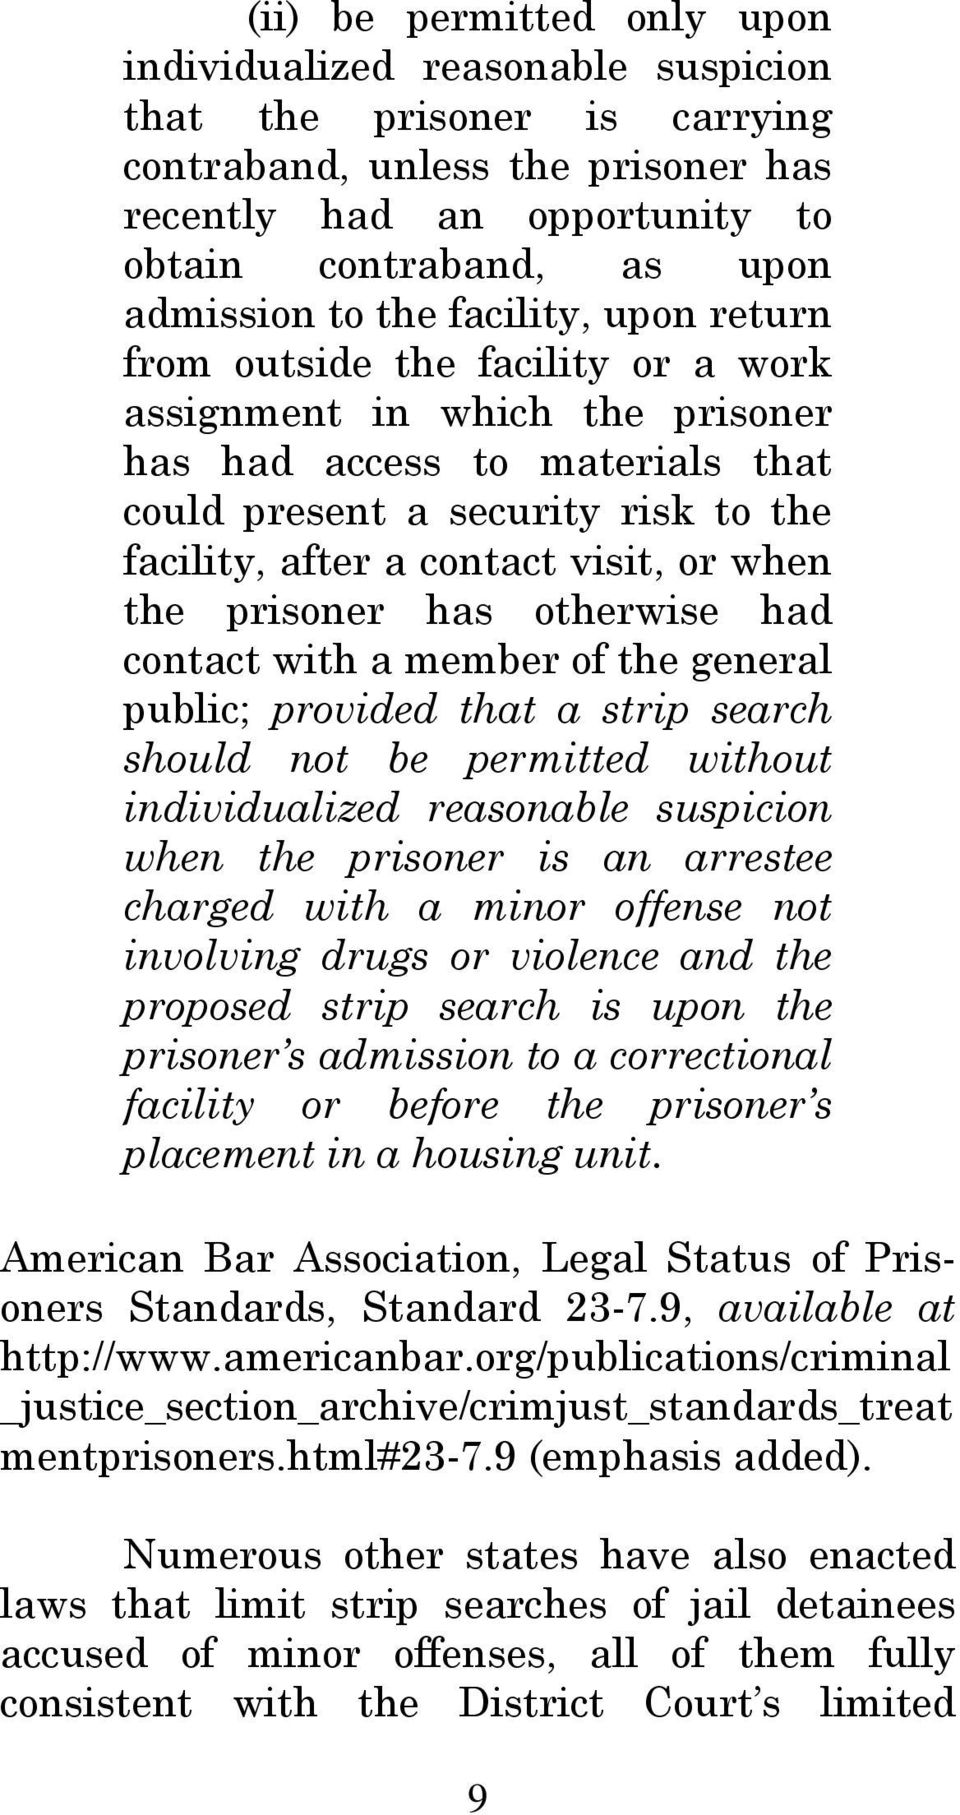 visit, or when the prisoner has otherwise had contact with a member of the general public; provided that a strip search should not be permitted without individualized reasonable suspicion when the